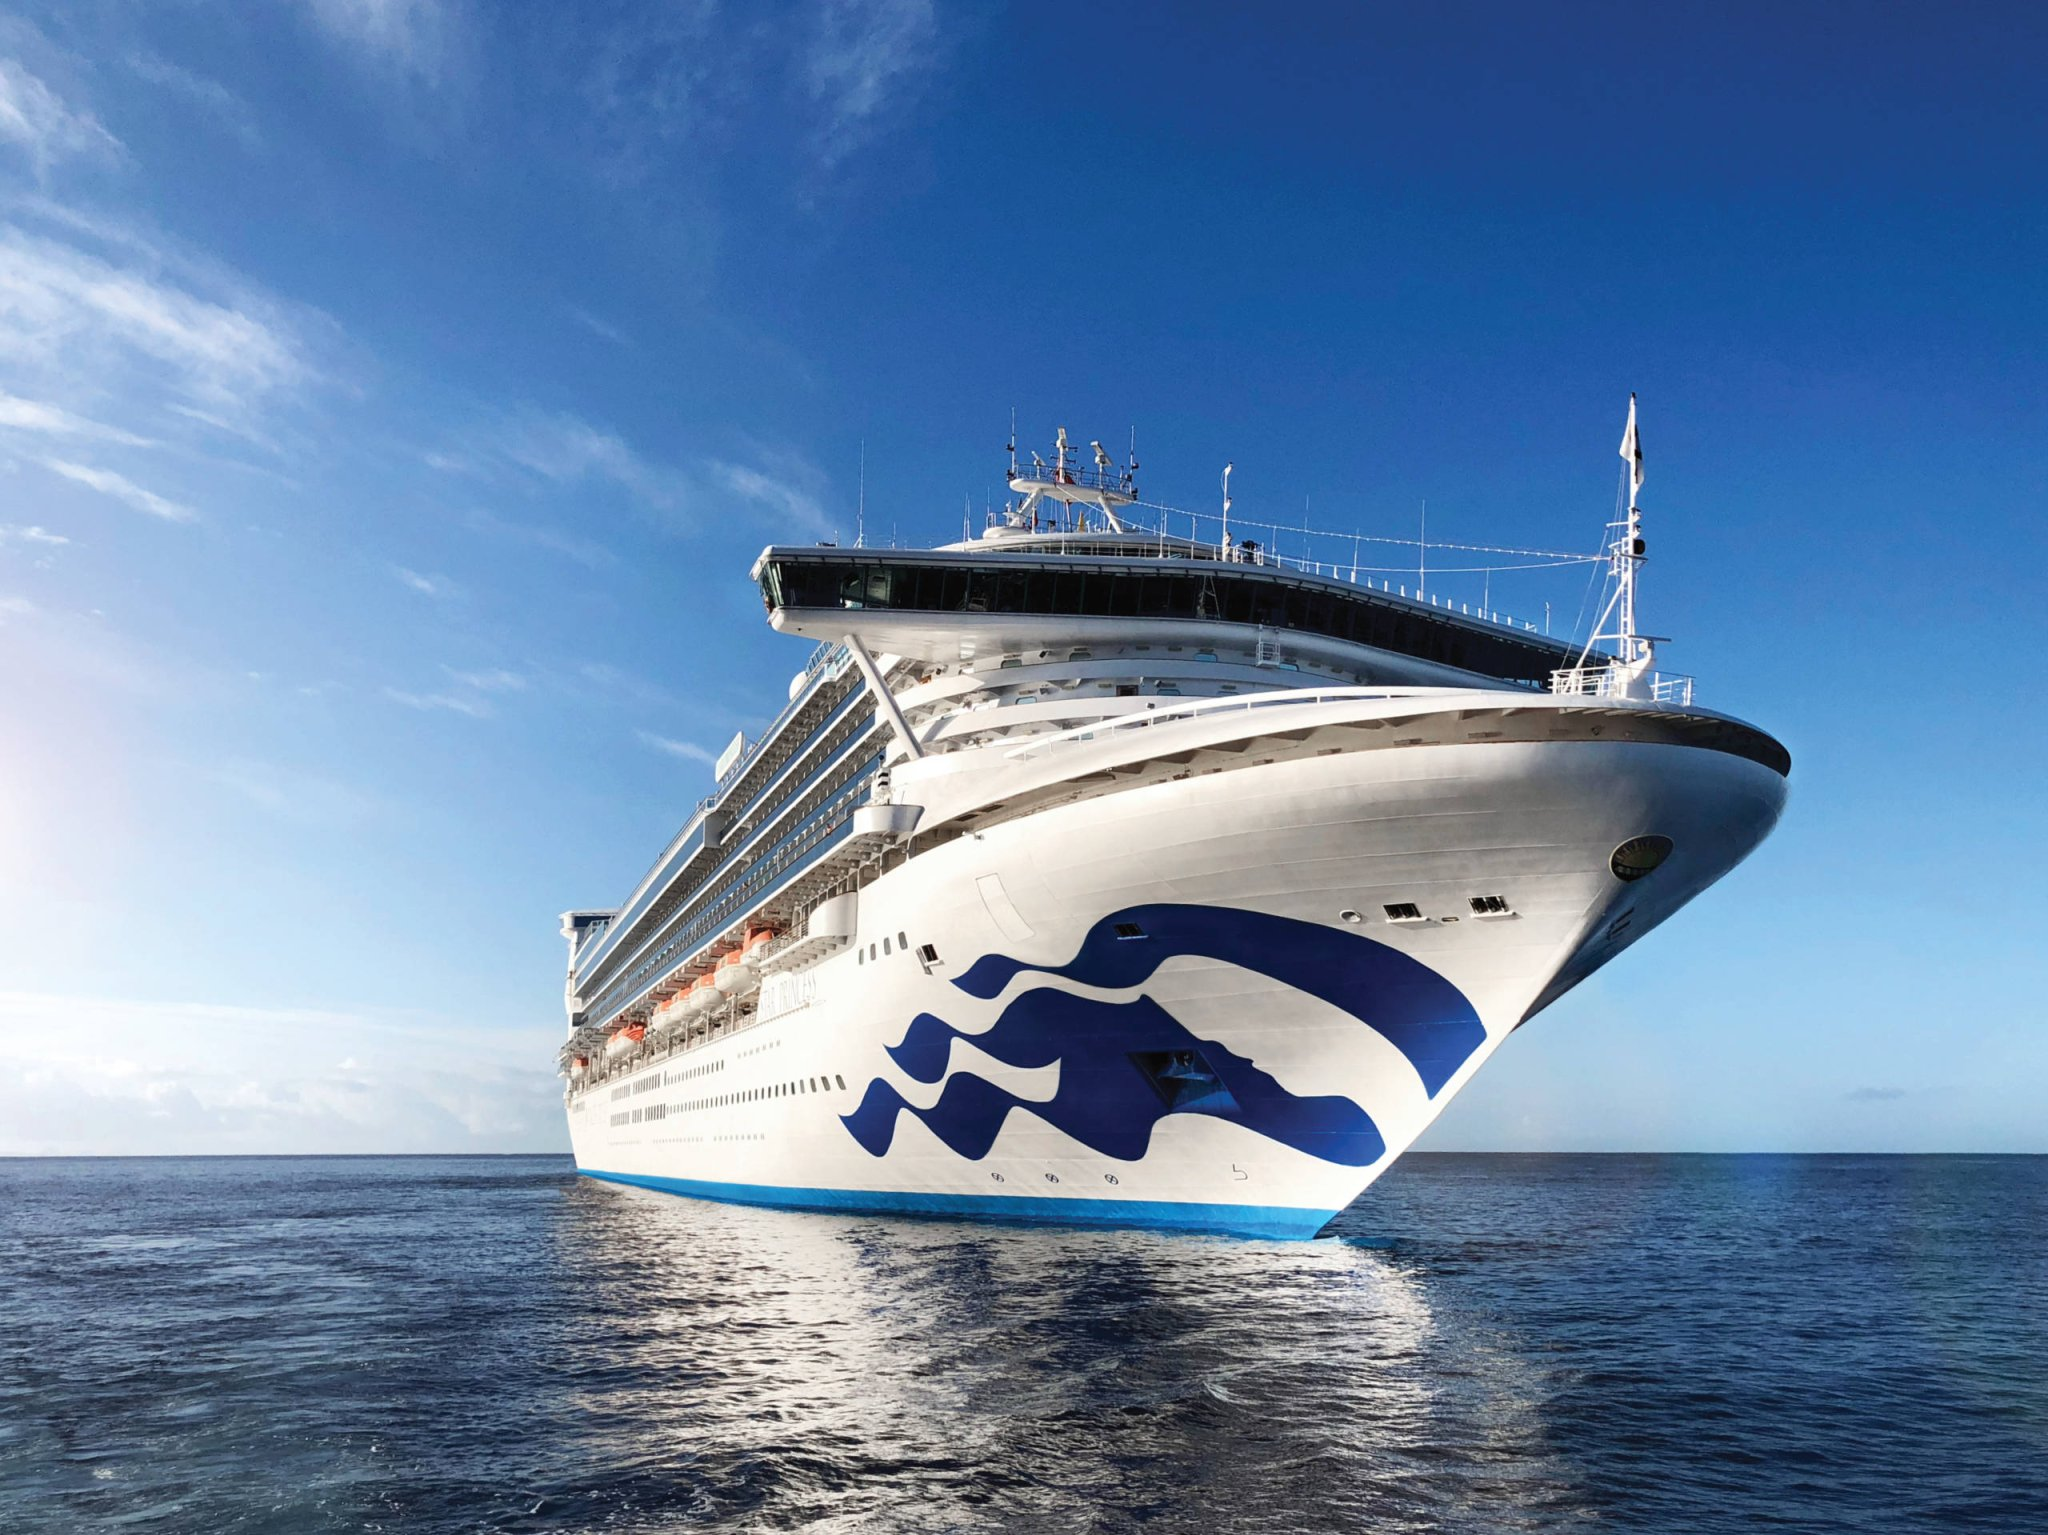 The 5 most desirable cabin locations on any cruise ship - The Points Guy